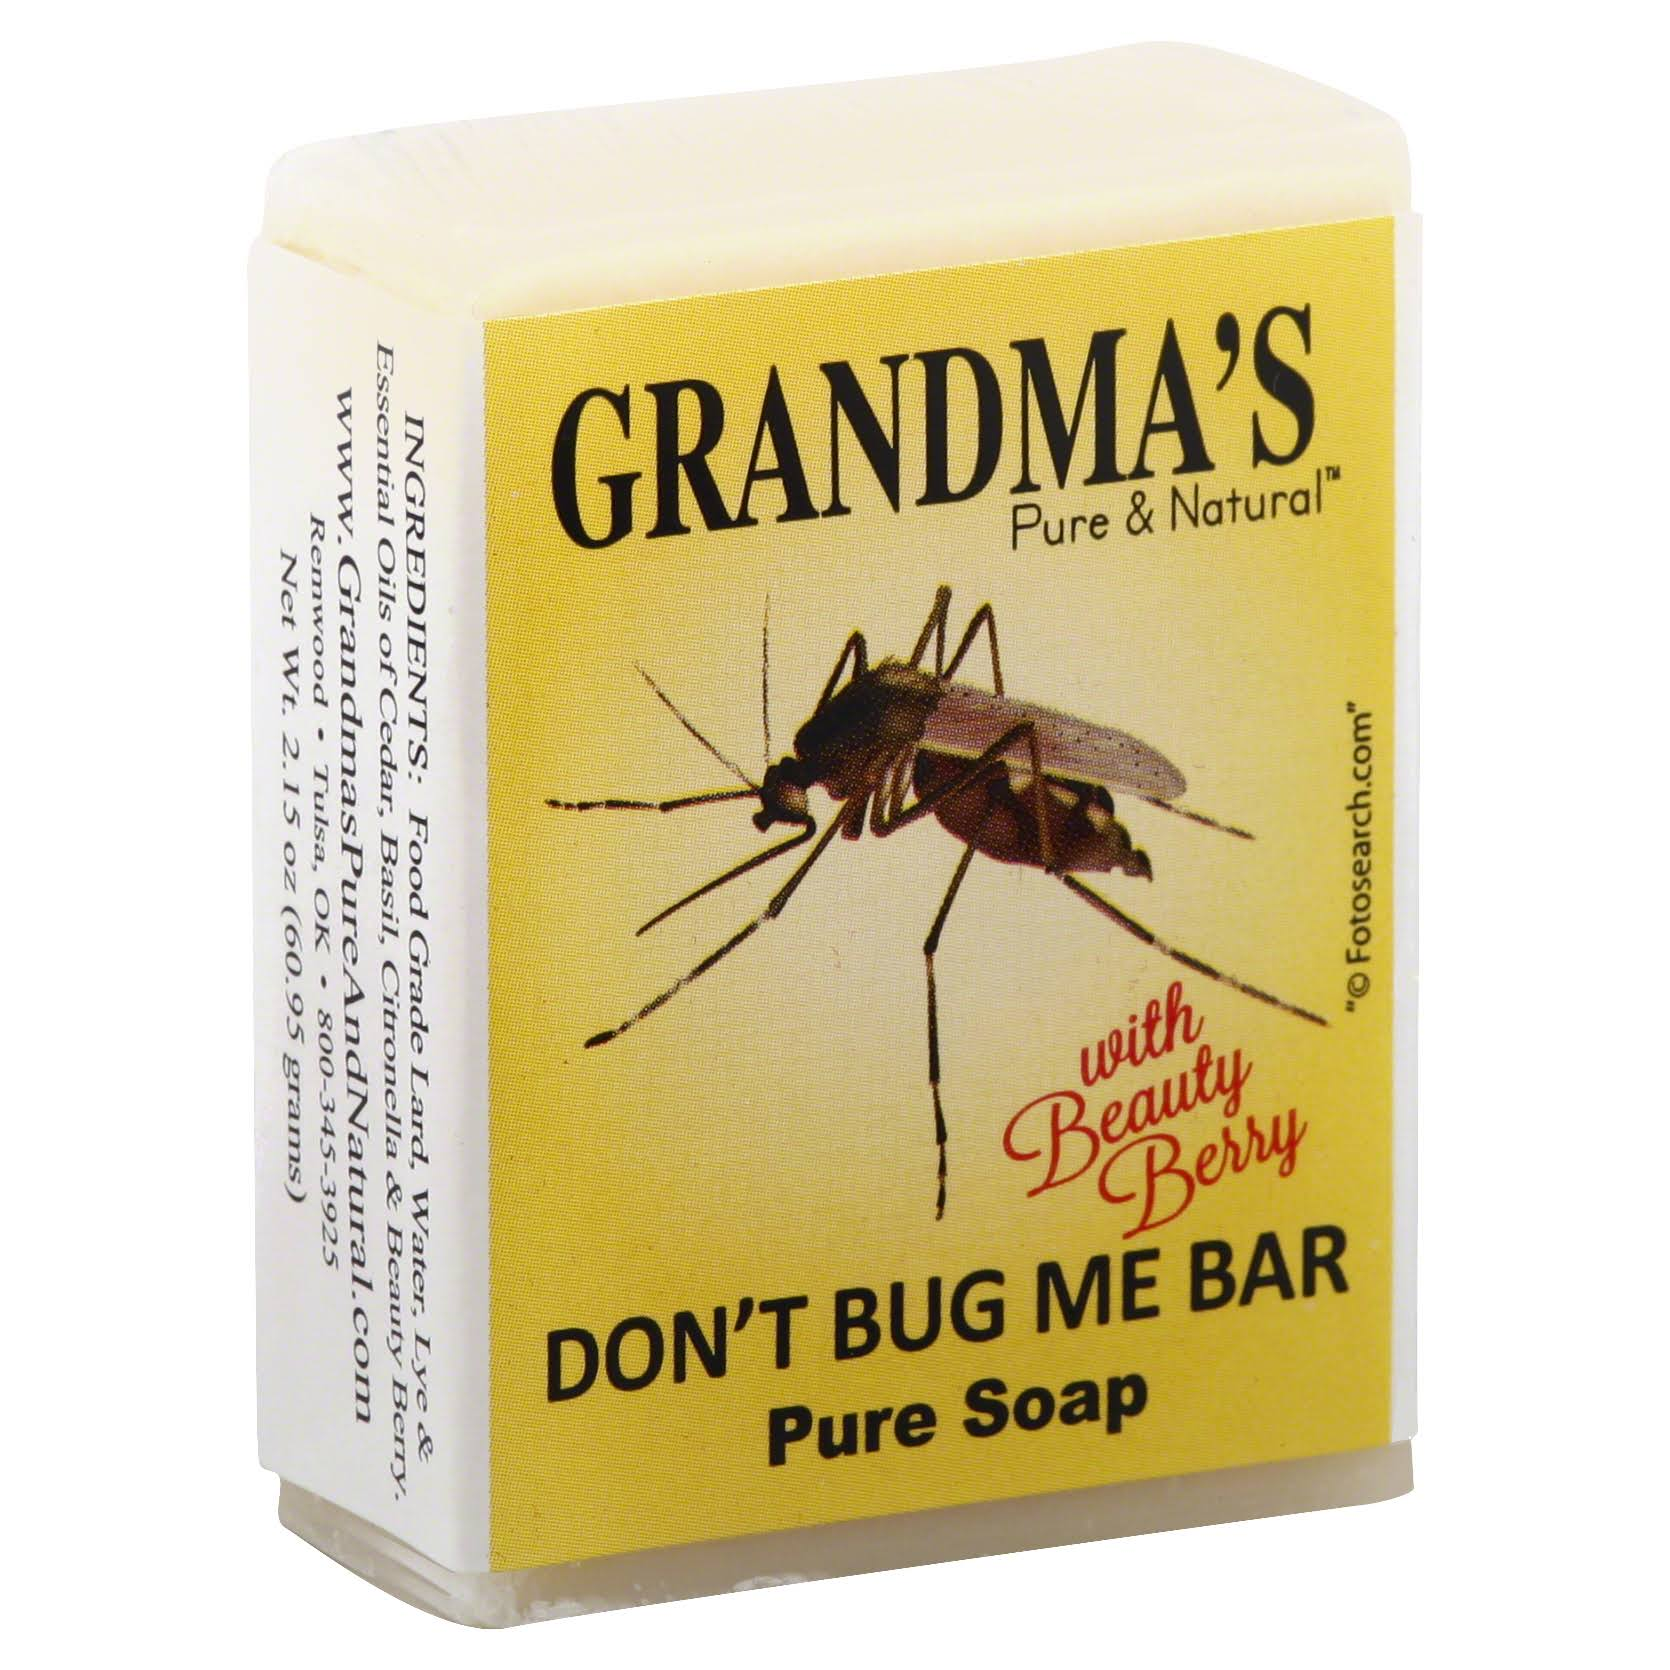 Grandma's Don't Bug Me Bar Soap